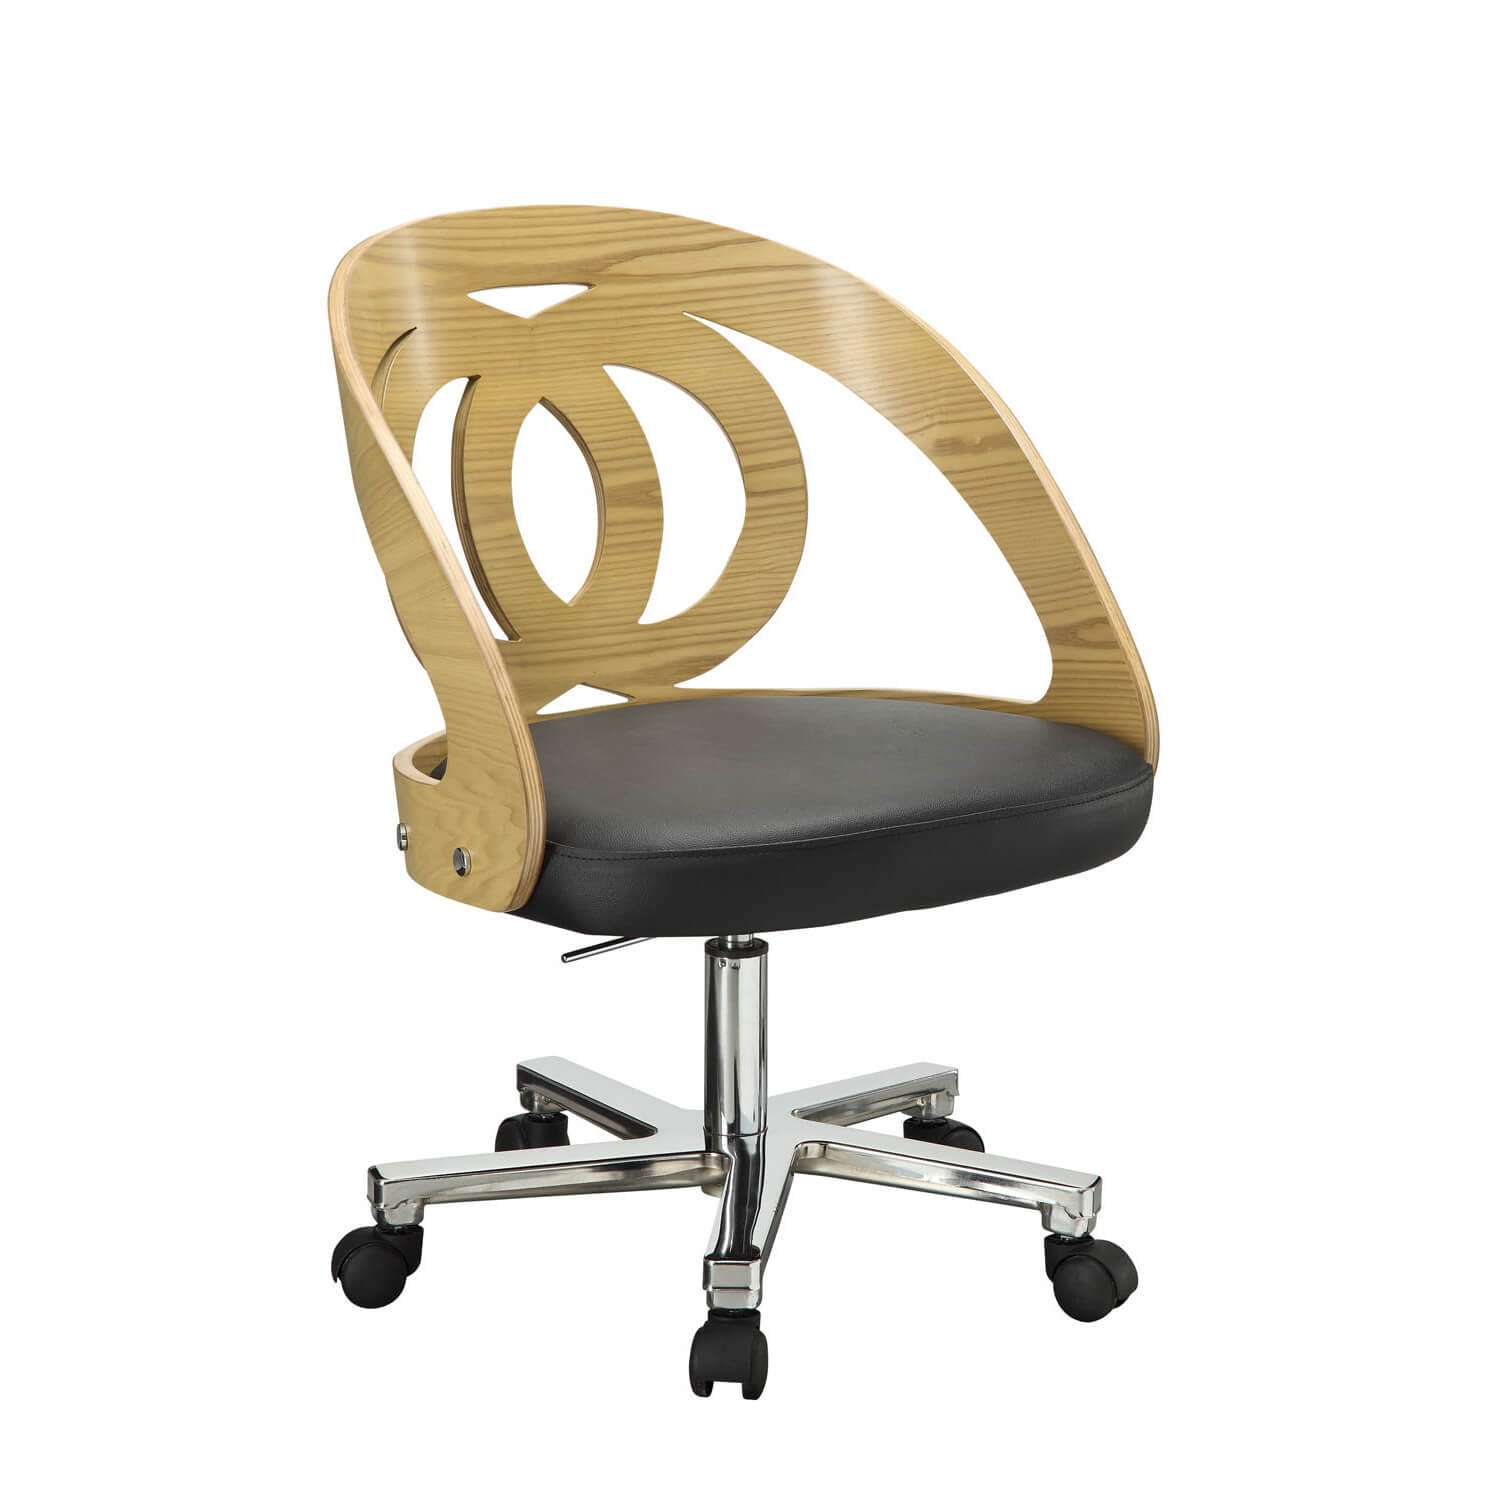 https://www.firstfurniture.co.uk/pub/media/catalog/product/j/u/jual-pc600-office-mid-back-chair_1.jpg